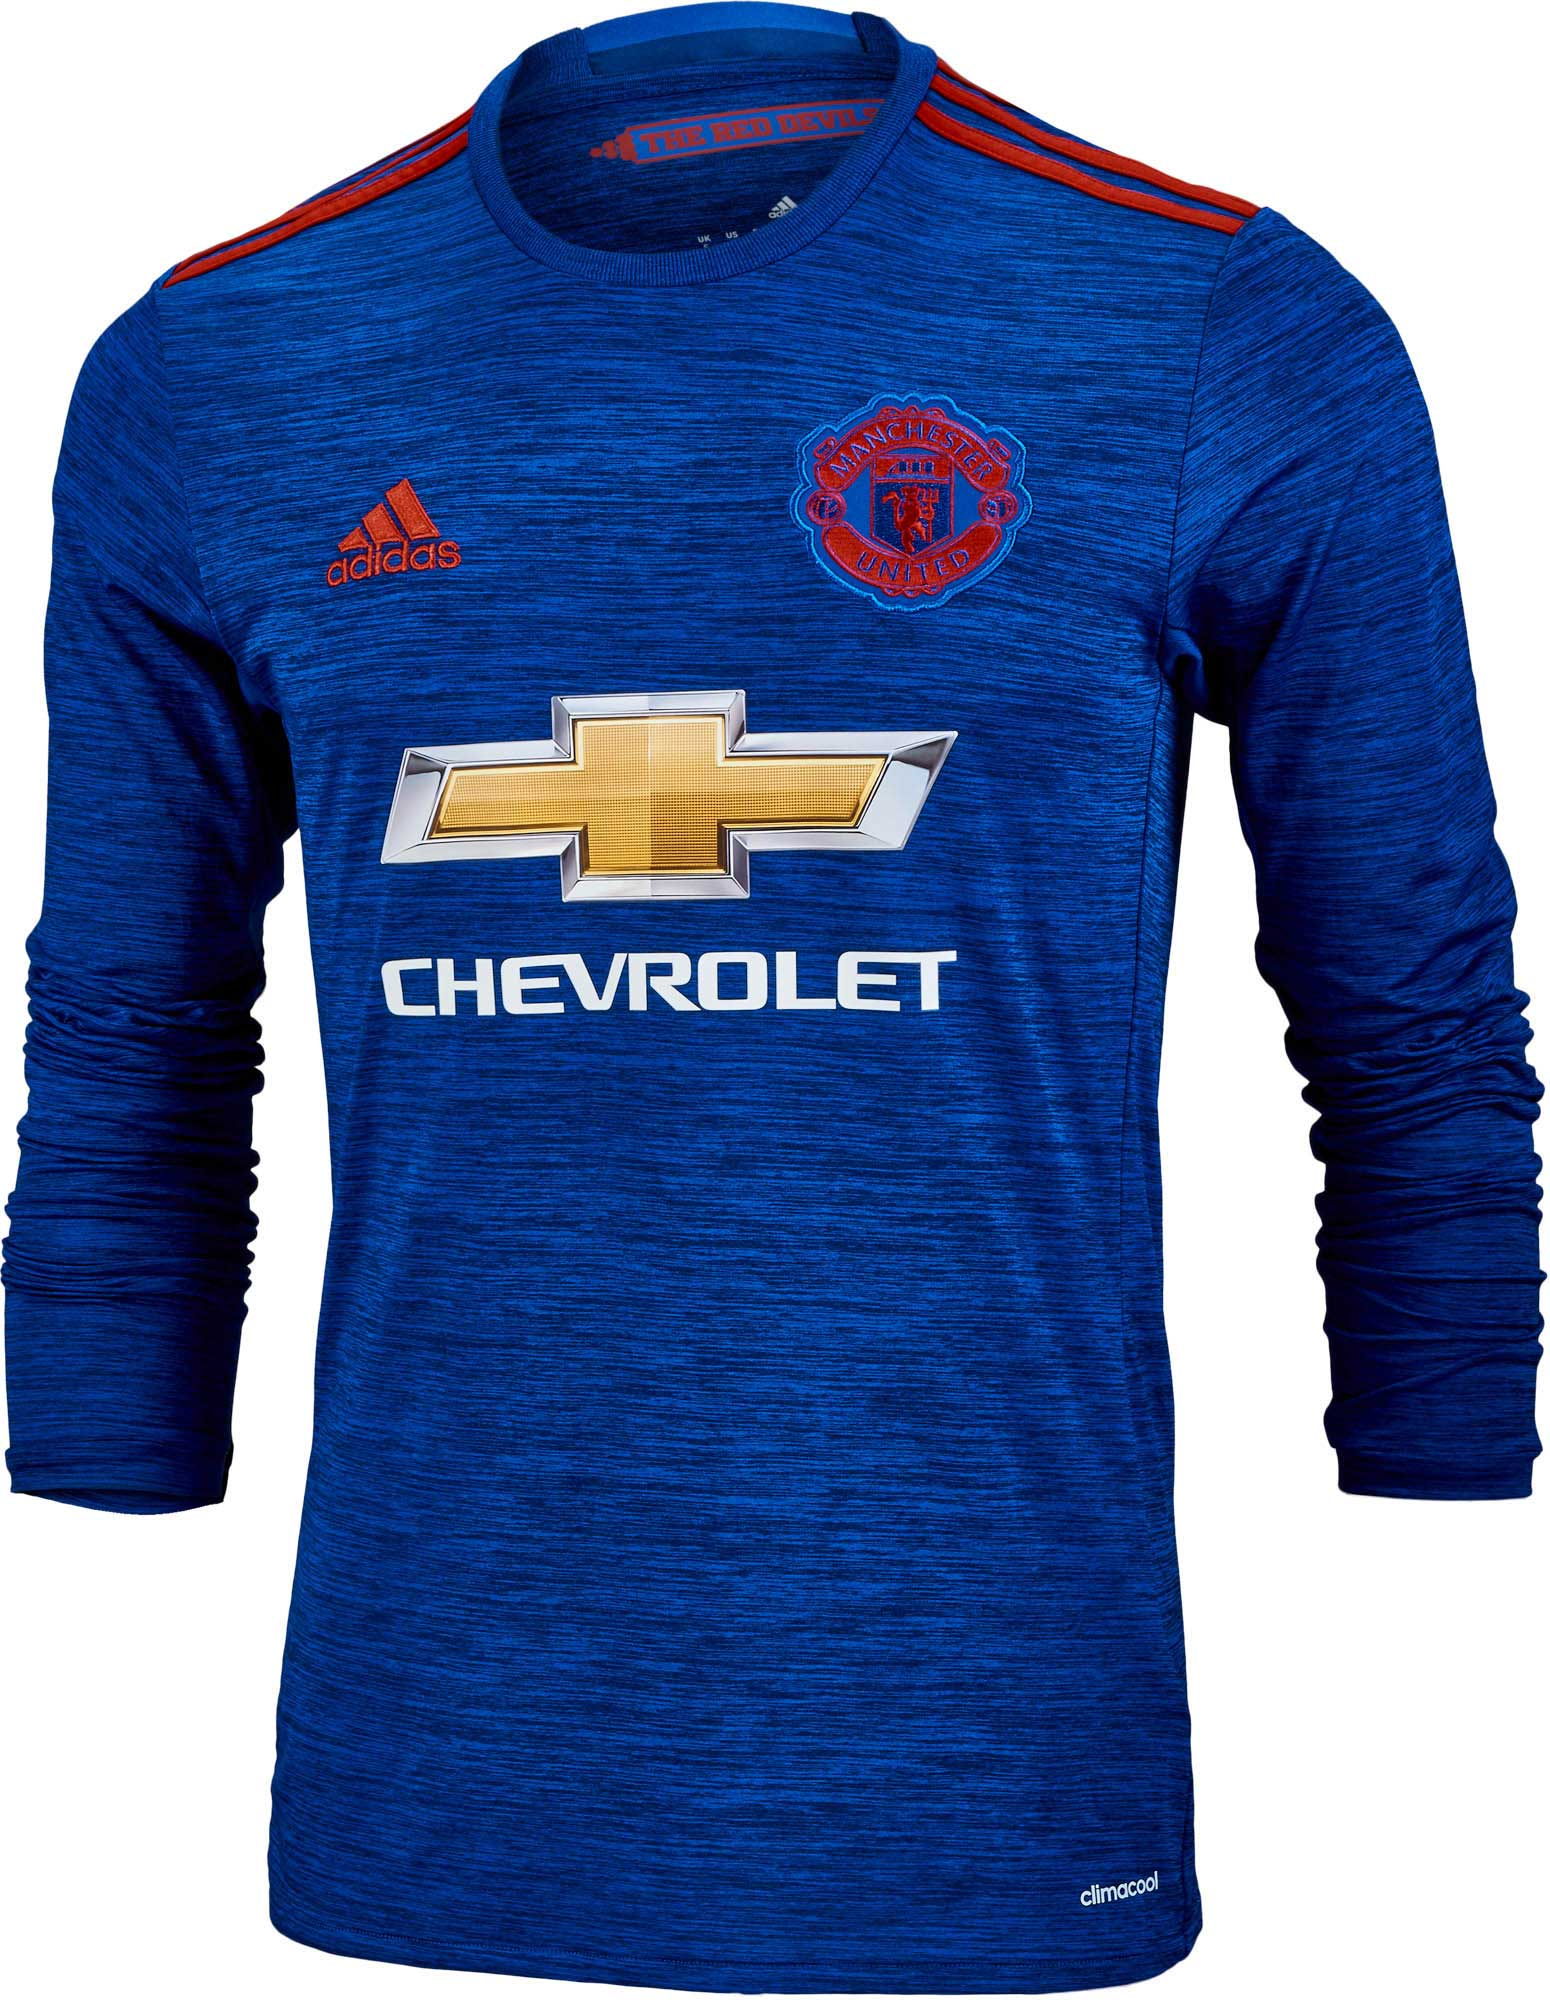 5c47336f2 adidas Manchester United L S Jersey - 2016 Man United Away Jerseys